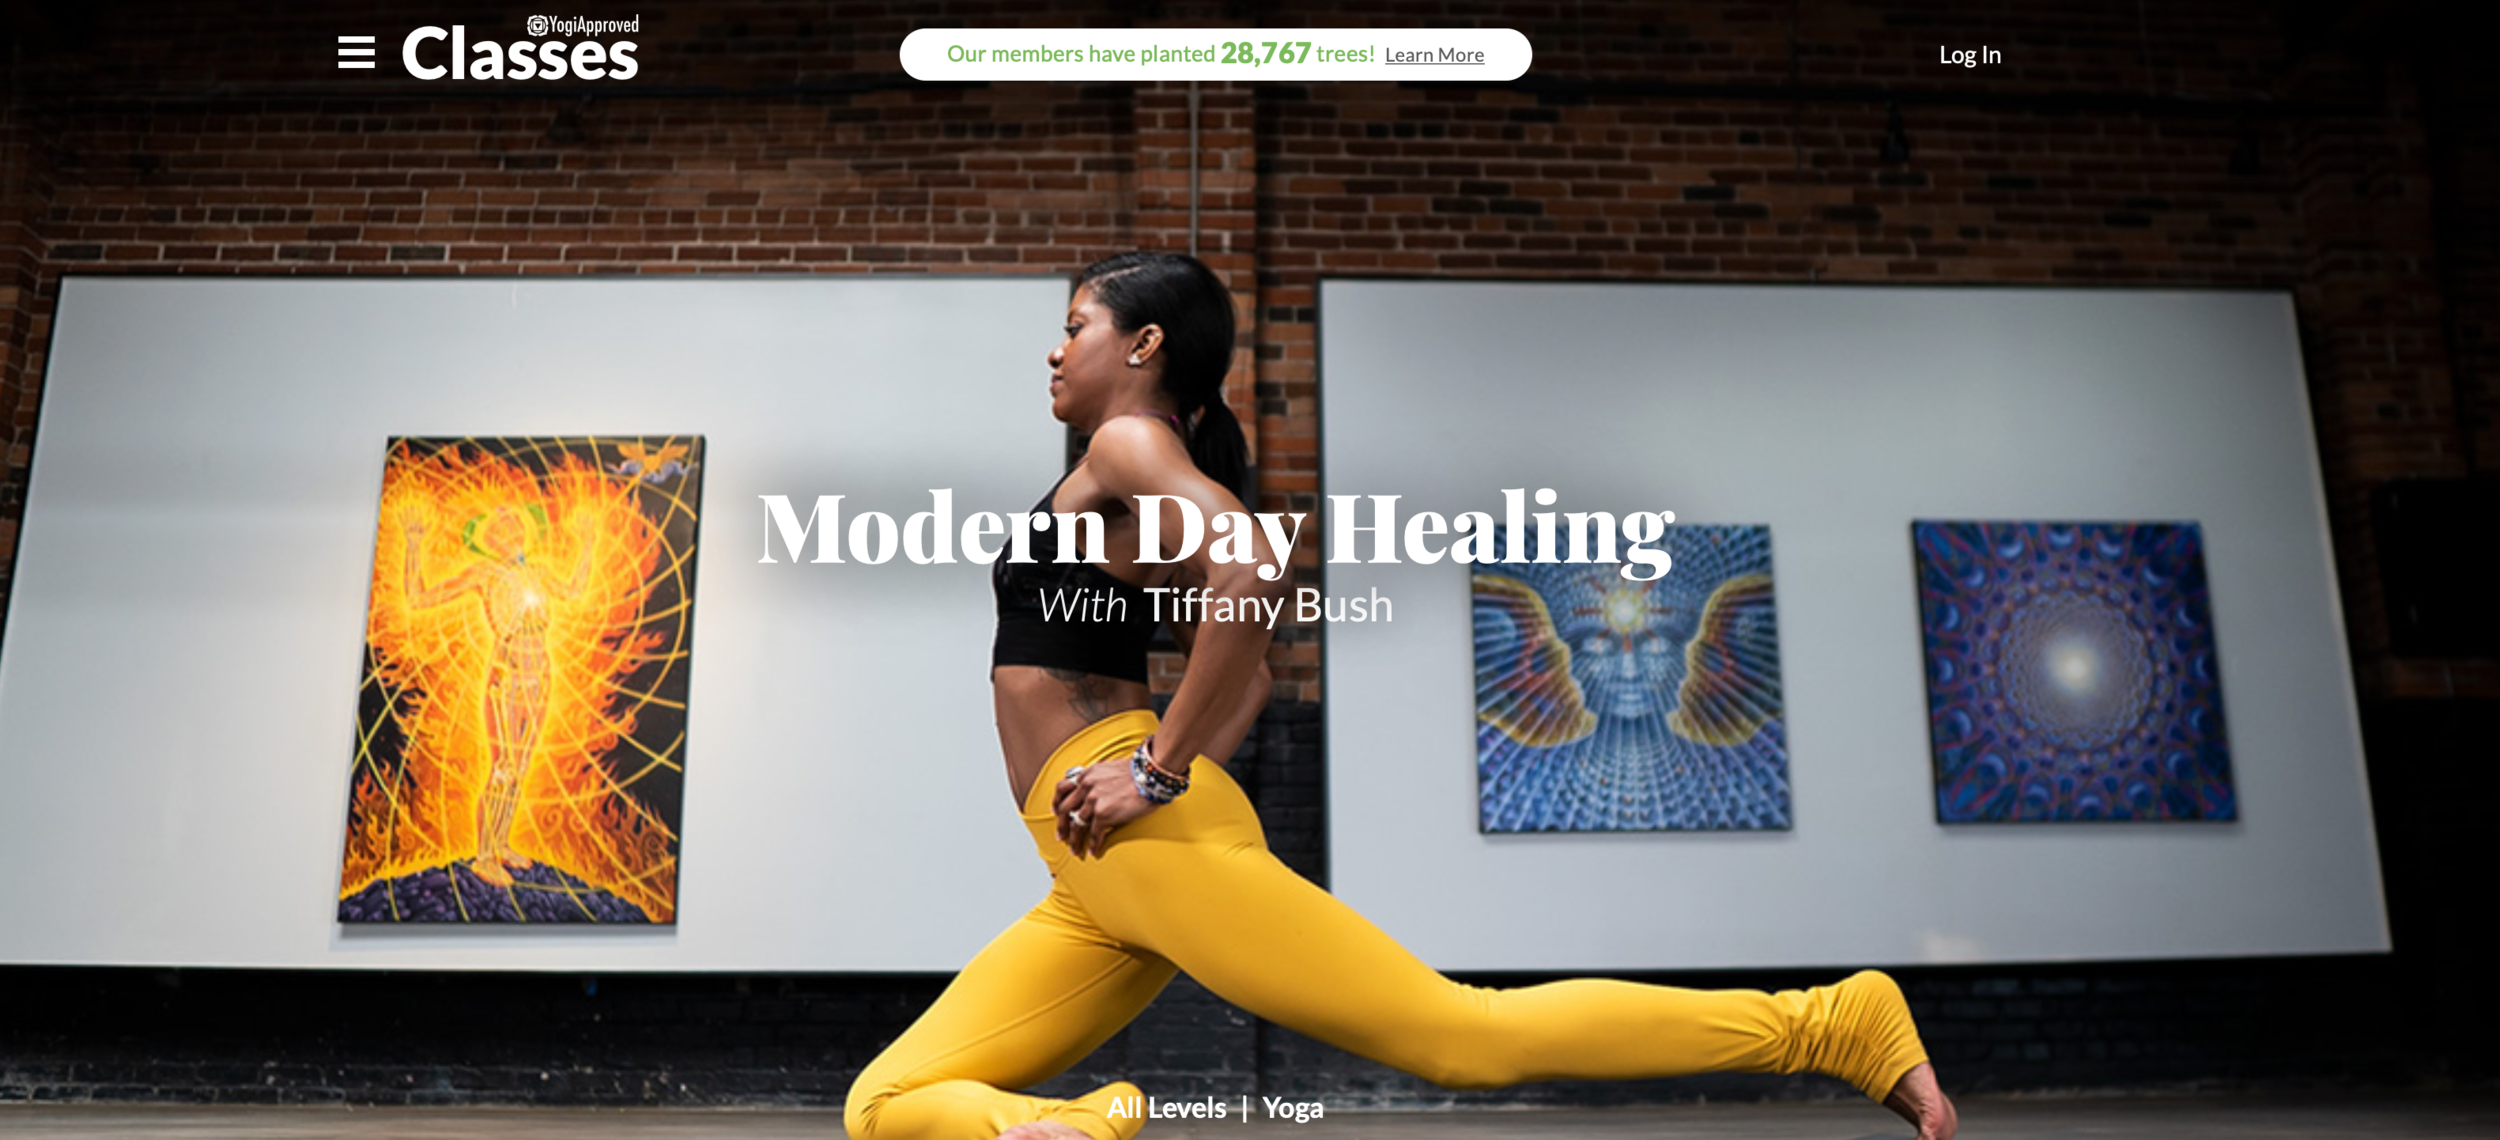 It is estimated that we spend over 11 hours  per day  on our screens. In today's technological age, most of us spend a lot of time typing, texting, and sitting. These repetitive motions lead to bad posture, chronic pain, and even decreased energy levels. Modern Day Healing is designed to help reverse the negative effects of our sedentary lifestyle. This program is also ideal for anyone who spends a lot of time on their feet. Practice yoga poses, stretches and movements that will help decrease pain, prevent injury, and increase mobility. Get ready to feel good!  5 Classes | 1hr 55min